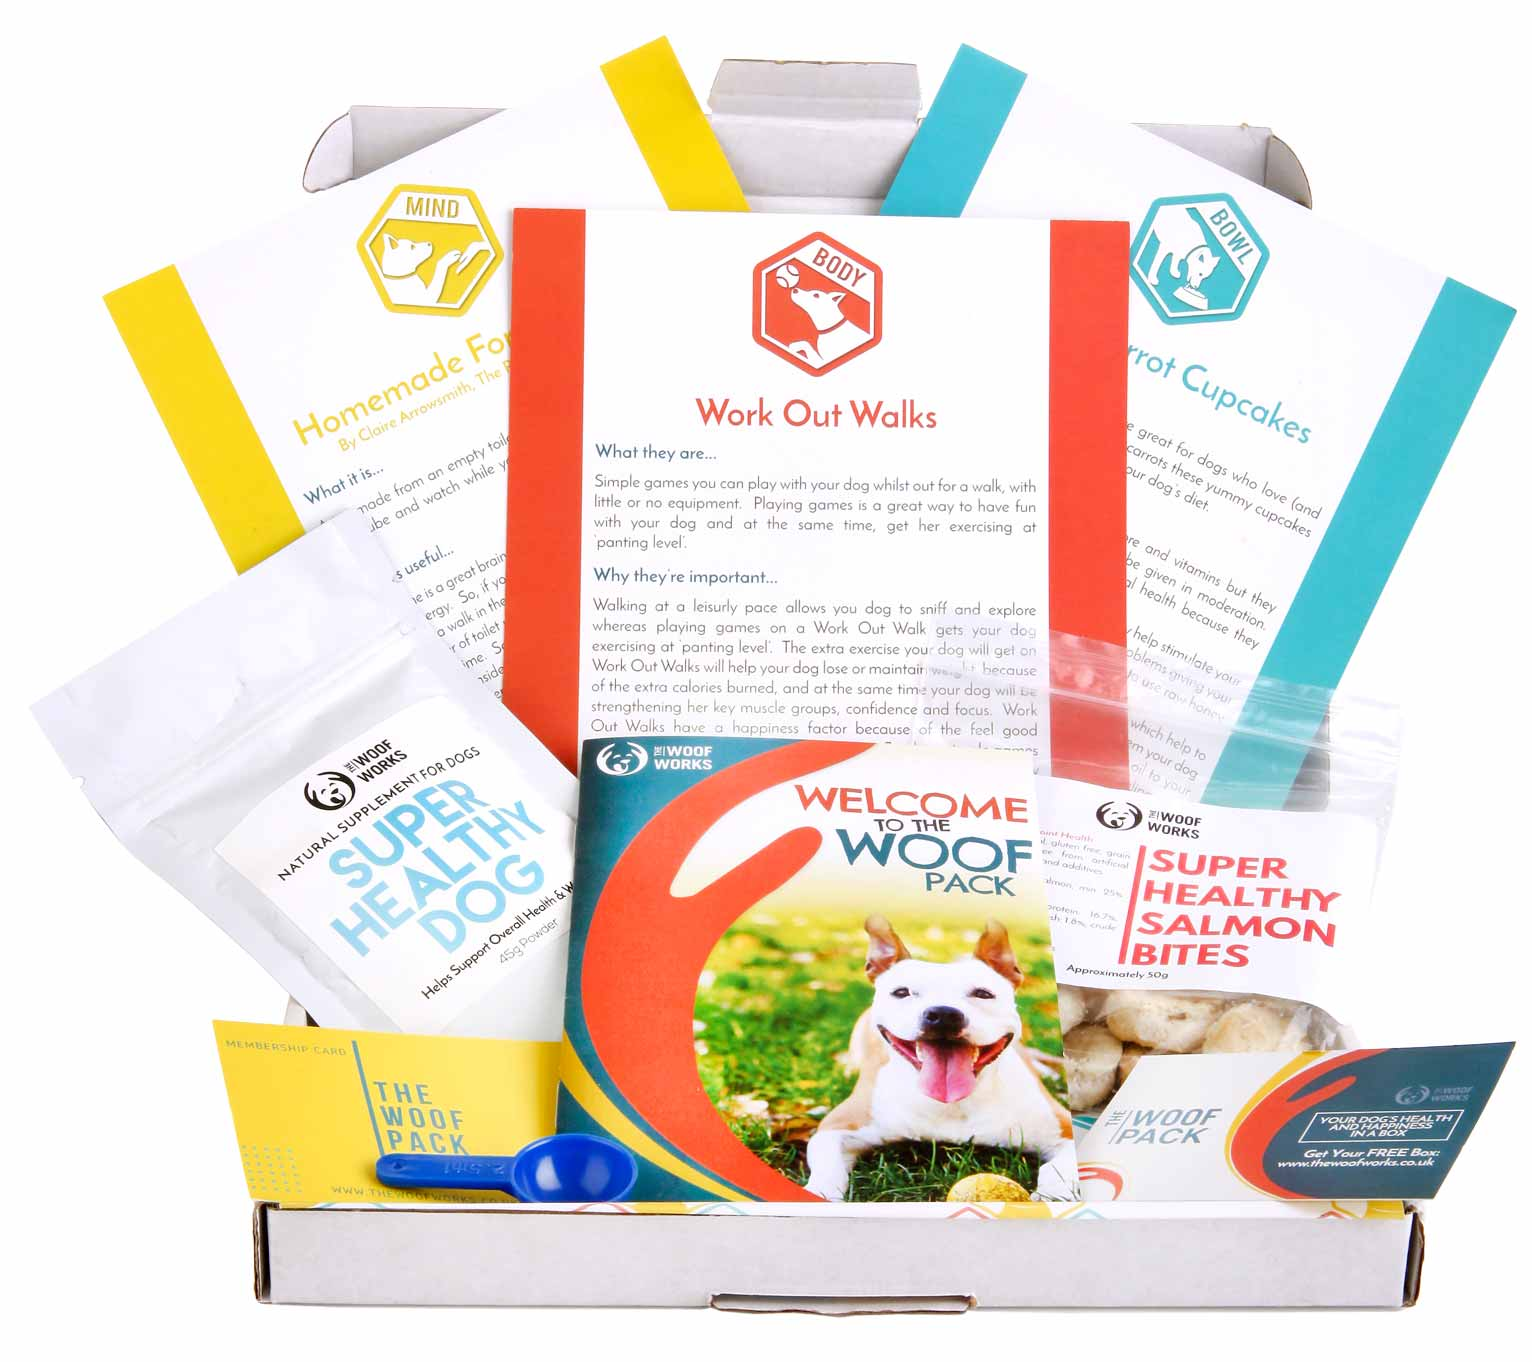 The Woof pack box from the woof works